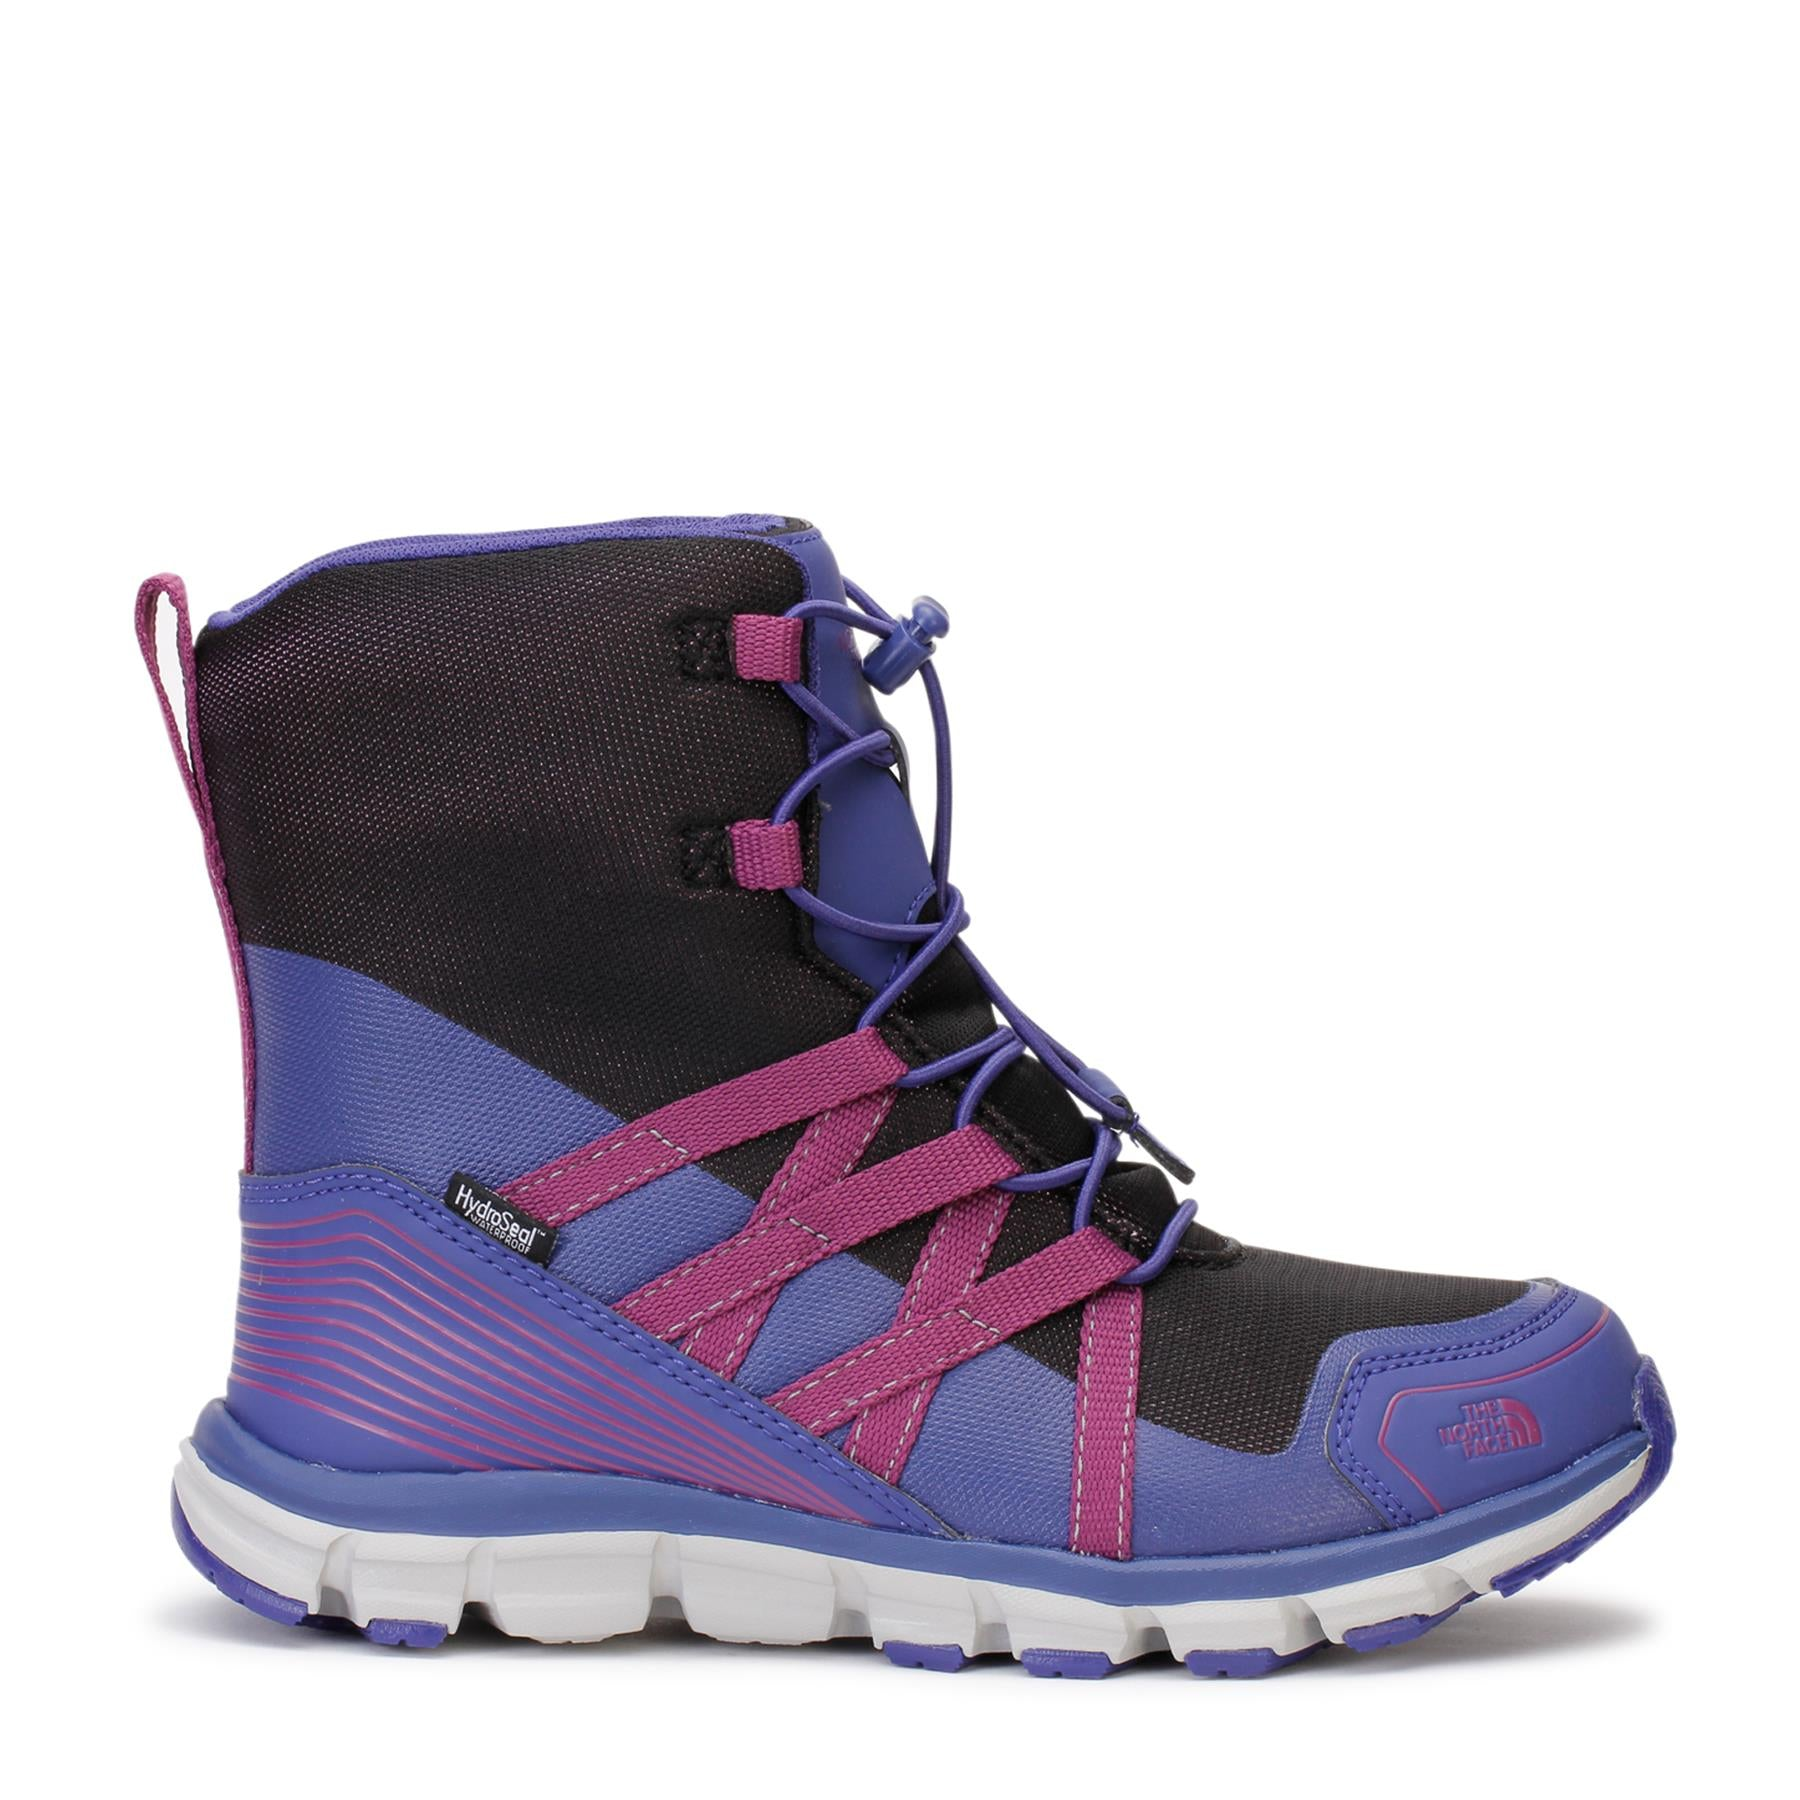 the-north-face-kids-junior-winter-sneakers-bright-navy-wood-violet-a2yb3ysf-main